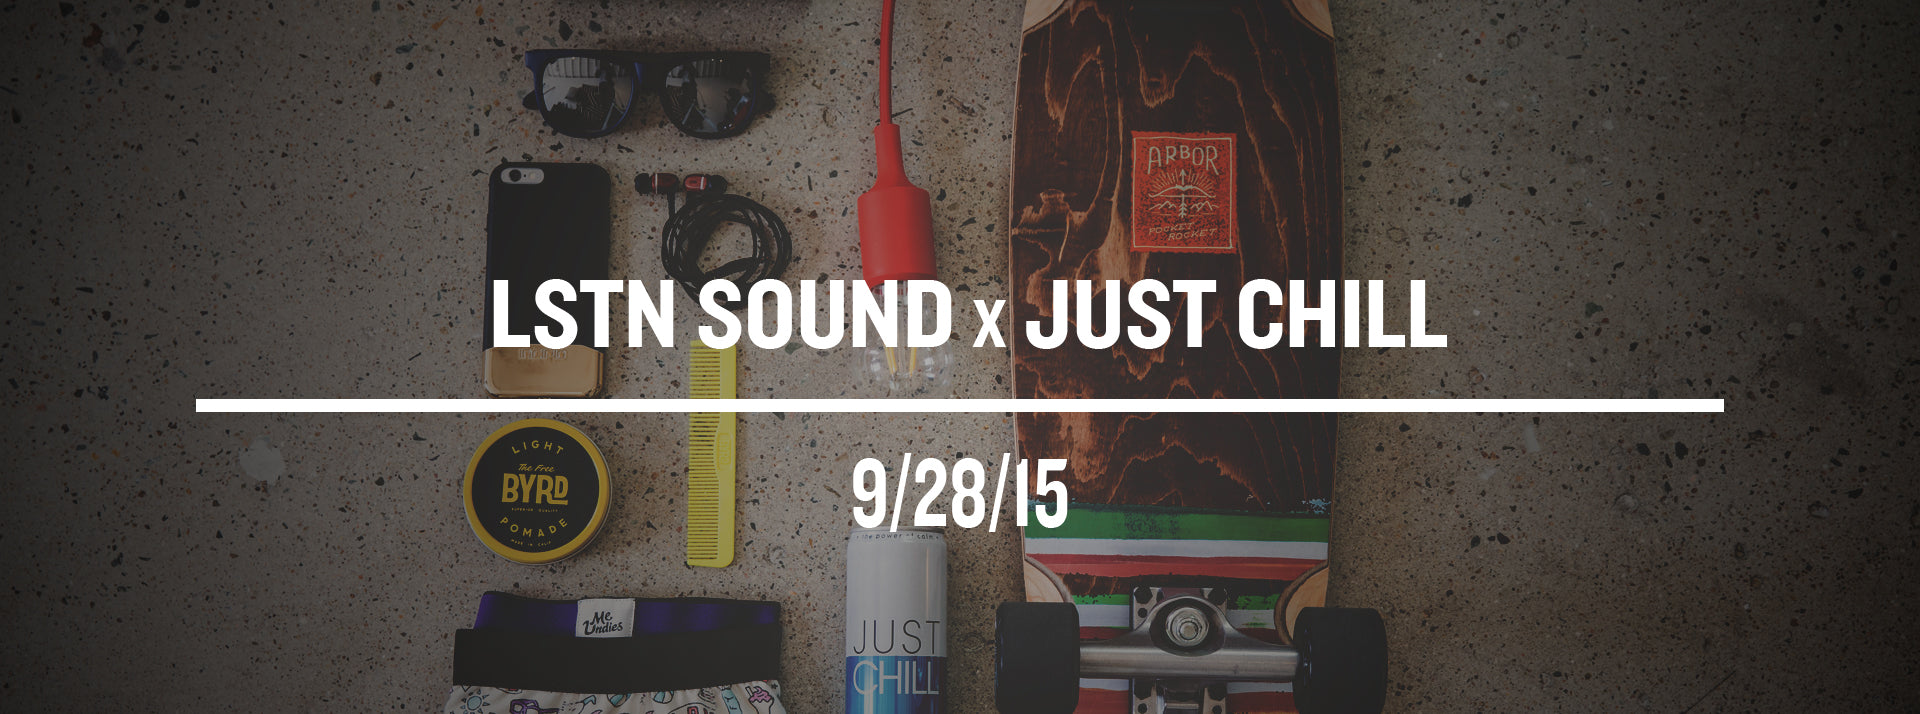 Just Chill Beverages and LSTN Sound Co Headphones, Earbuds